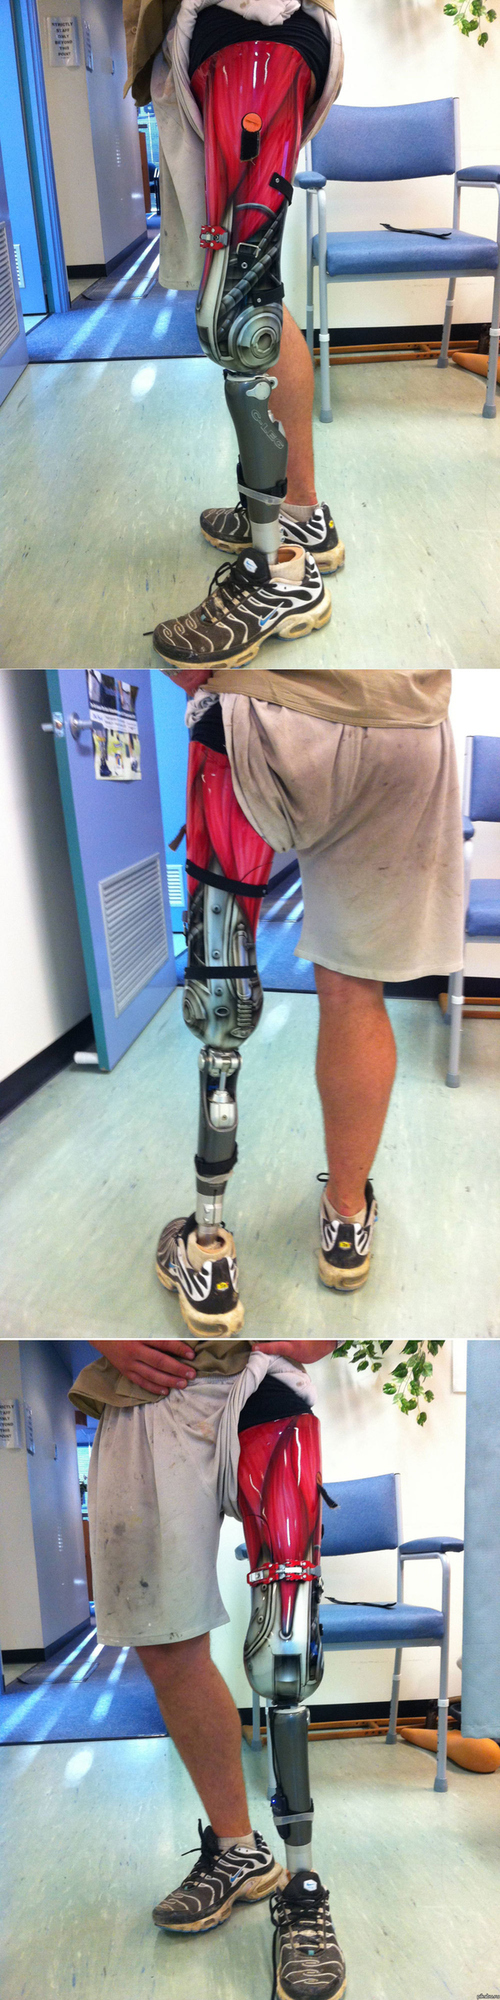 The Coolest Prosthetic Leg Ever